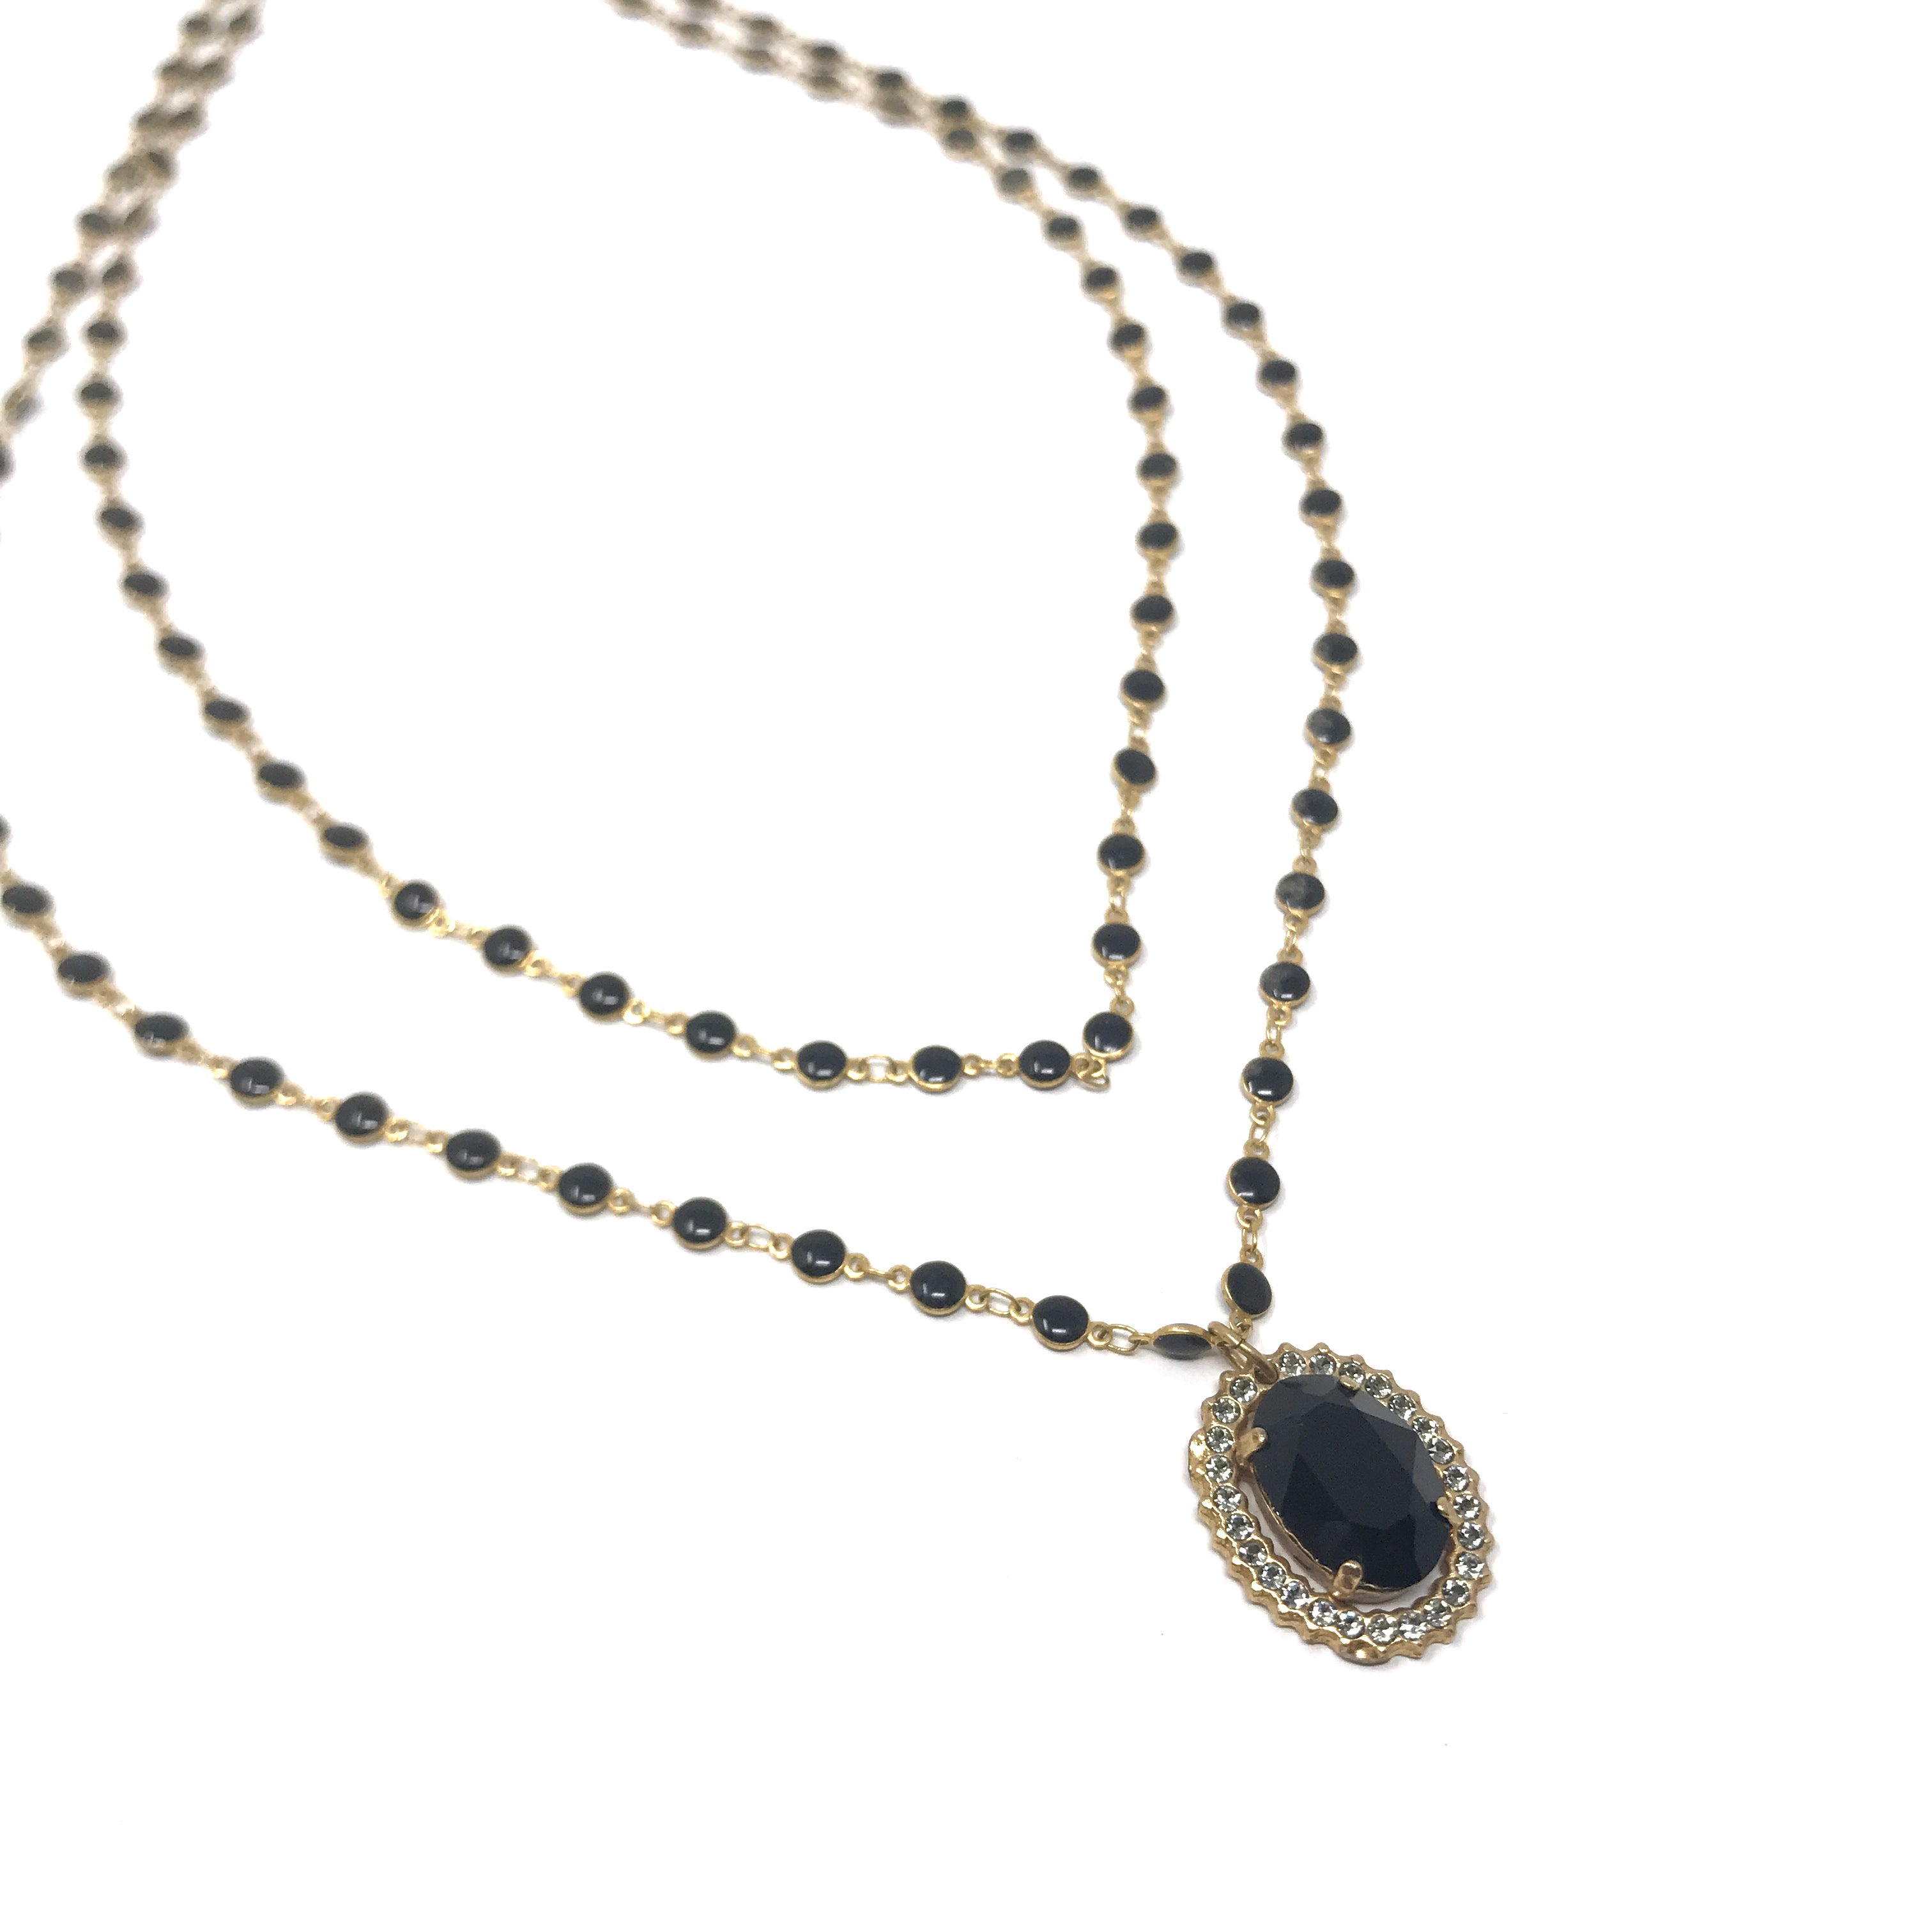 Crystal Onyx Necklace